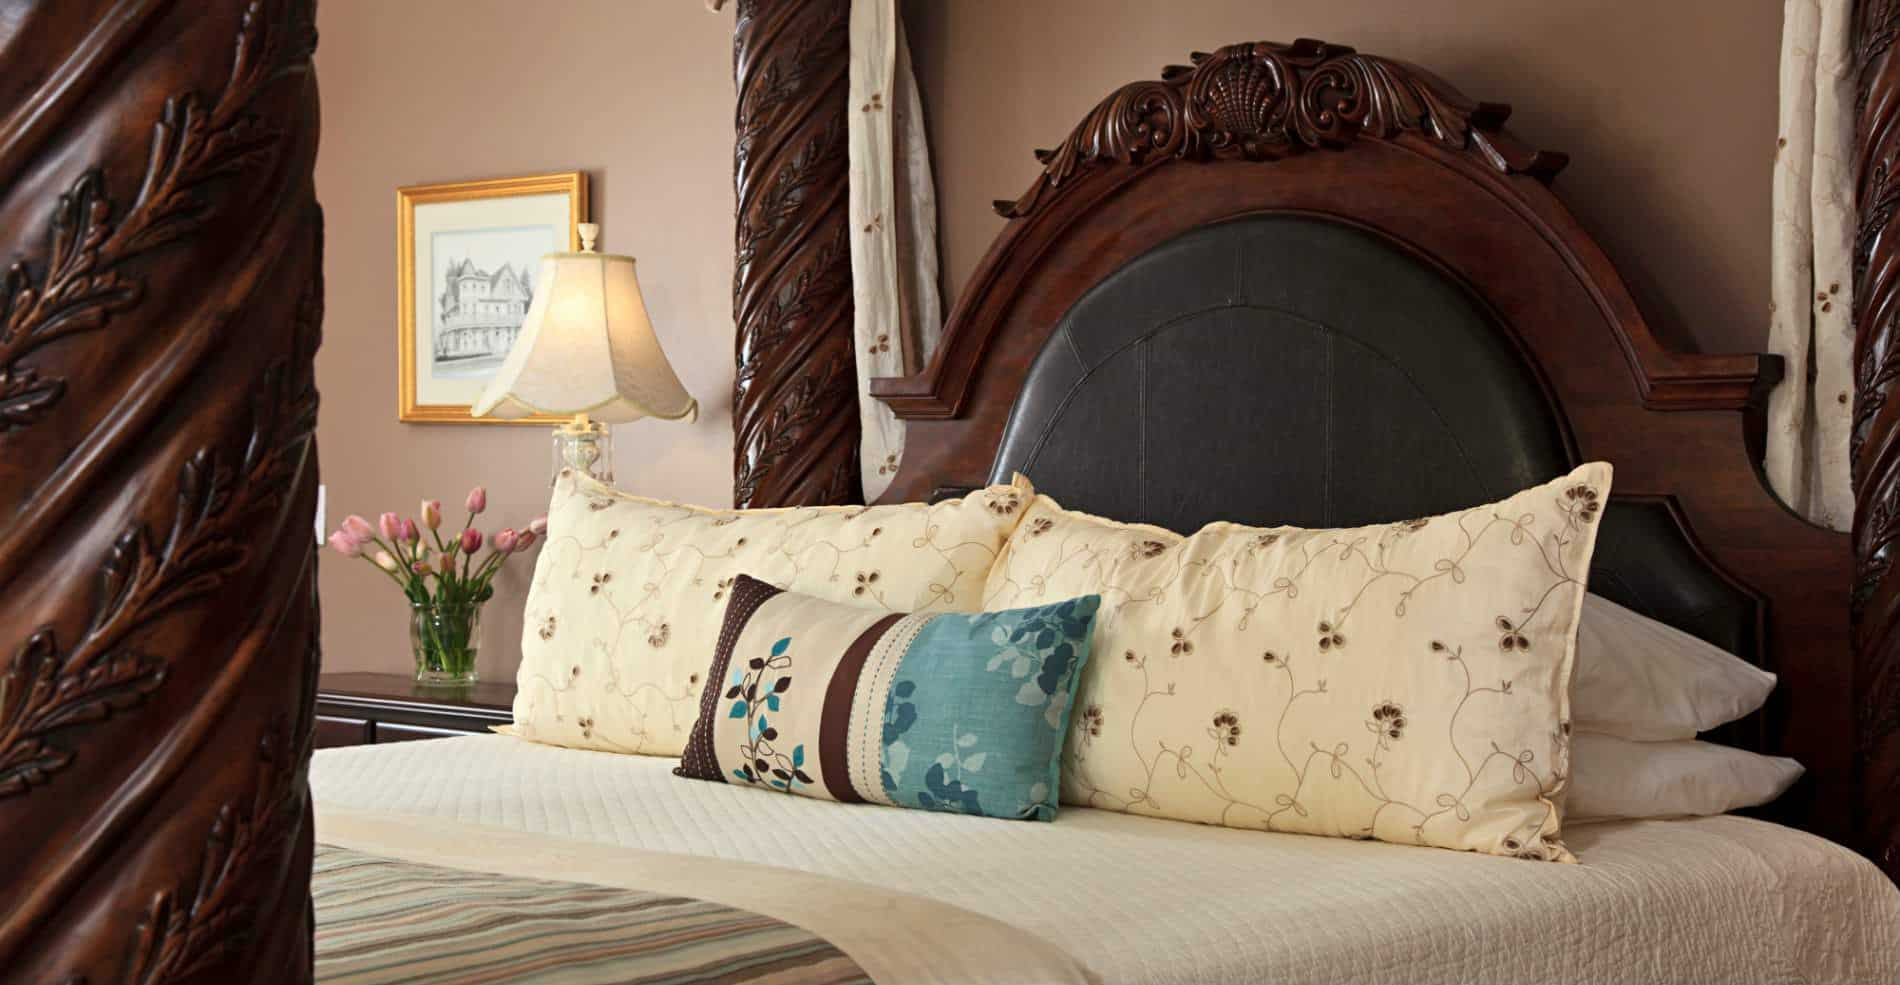 A close up of a big  dark brown beautiful four post bed with cream colored pillows